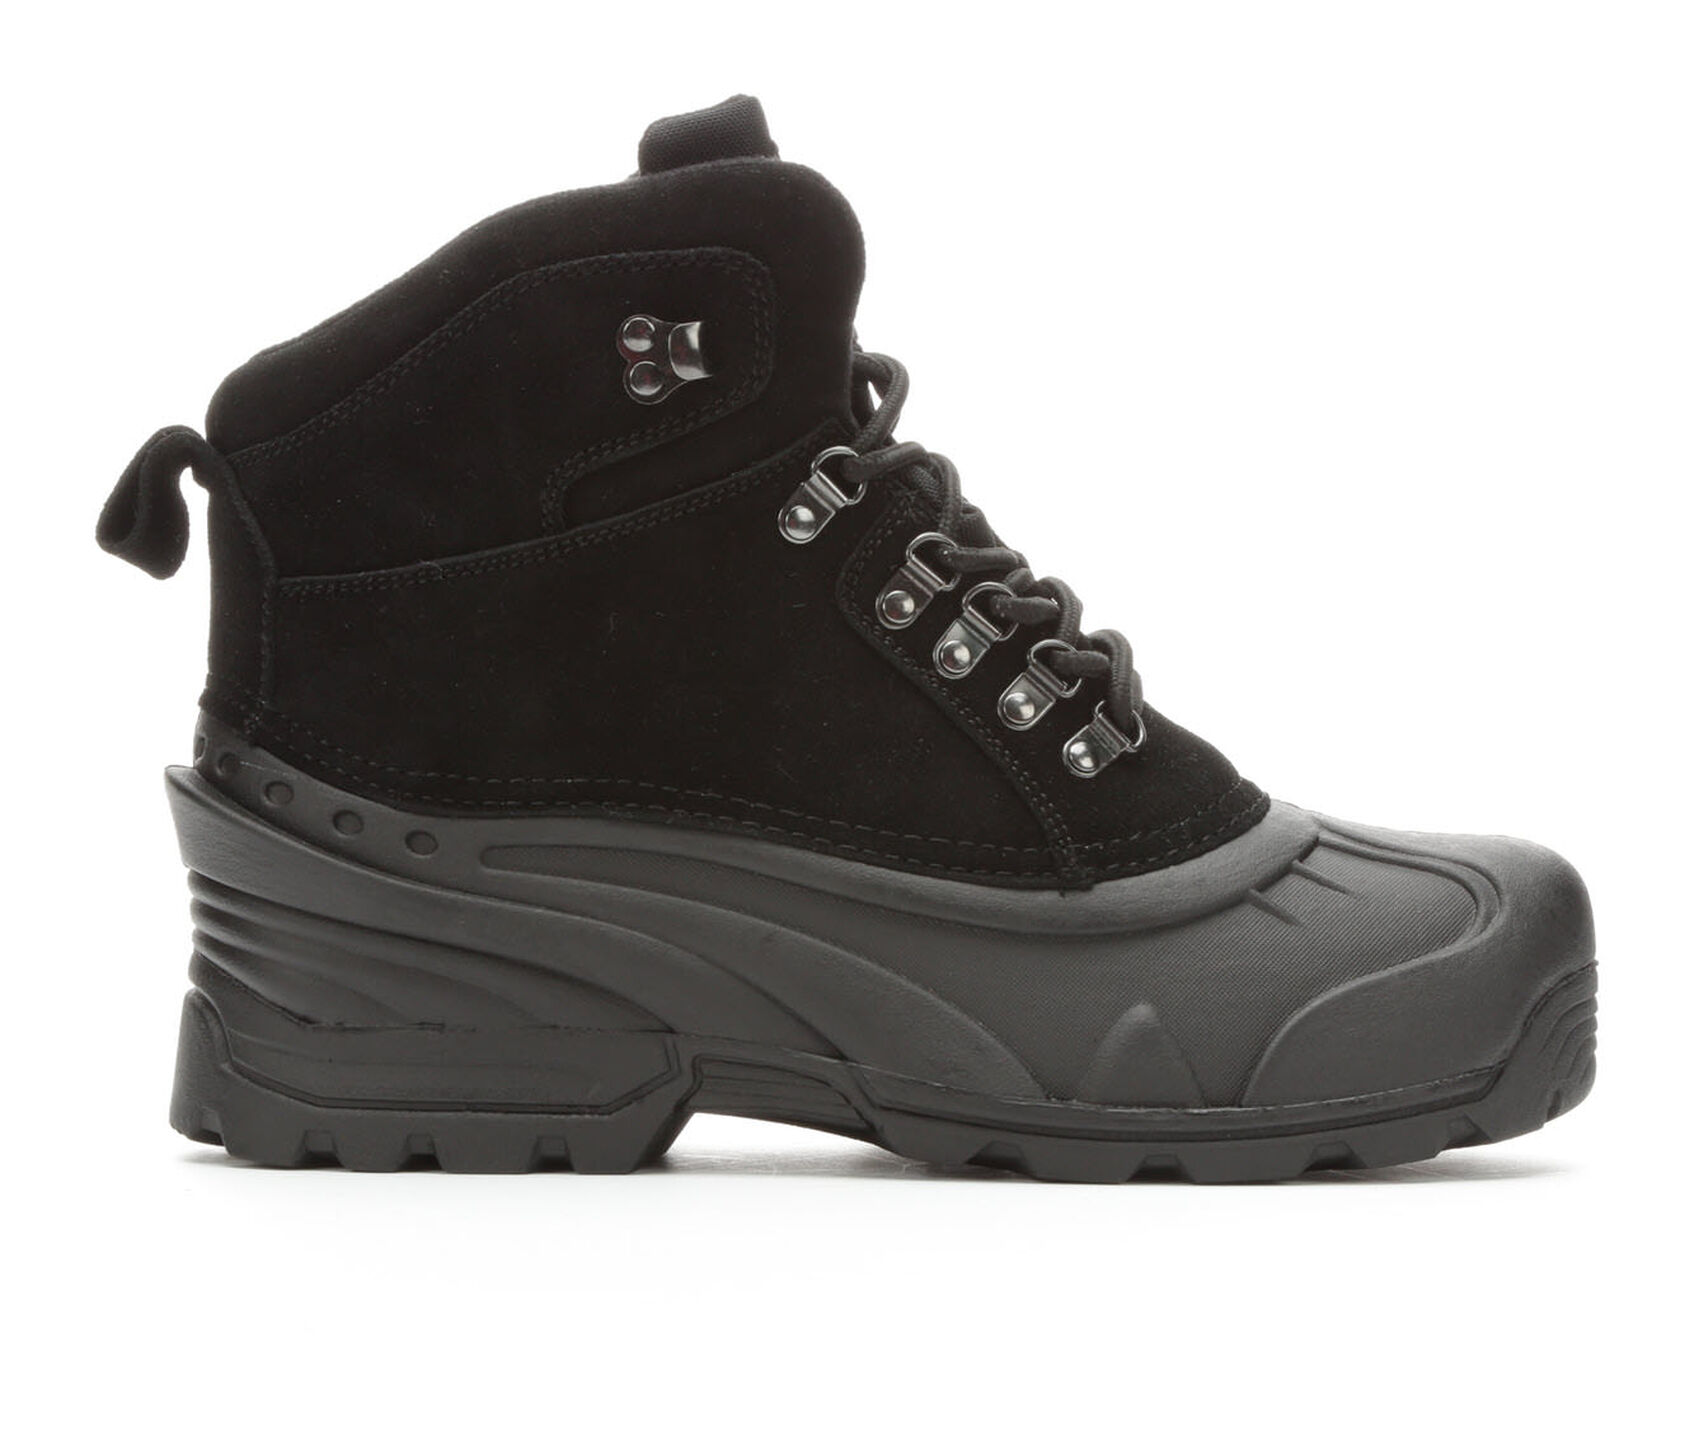 ff67fc49d9b Men's Itasca Sonoma Ice House II Winter Boots | Shoe Carnival